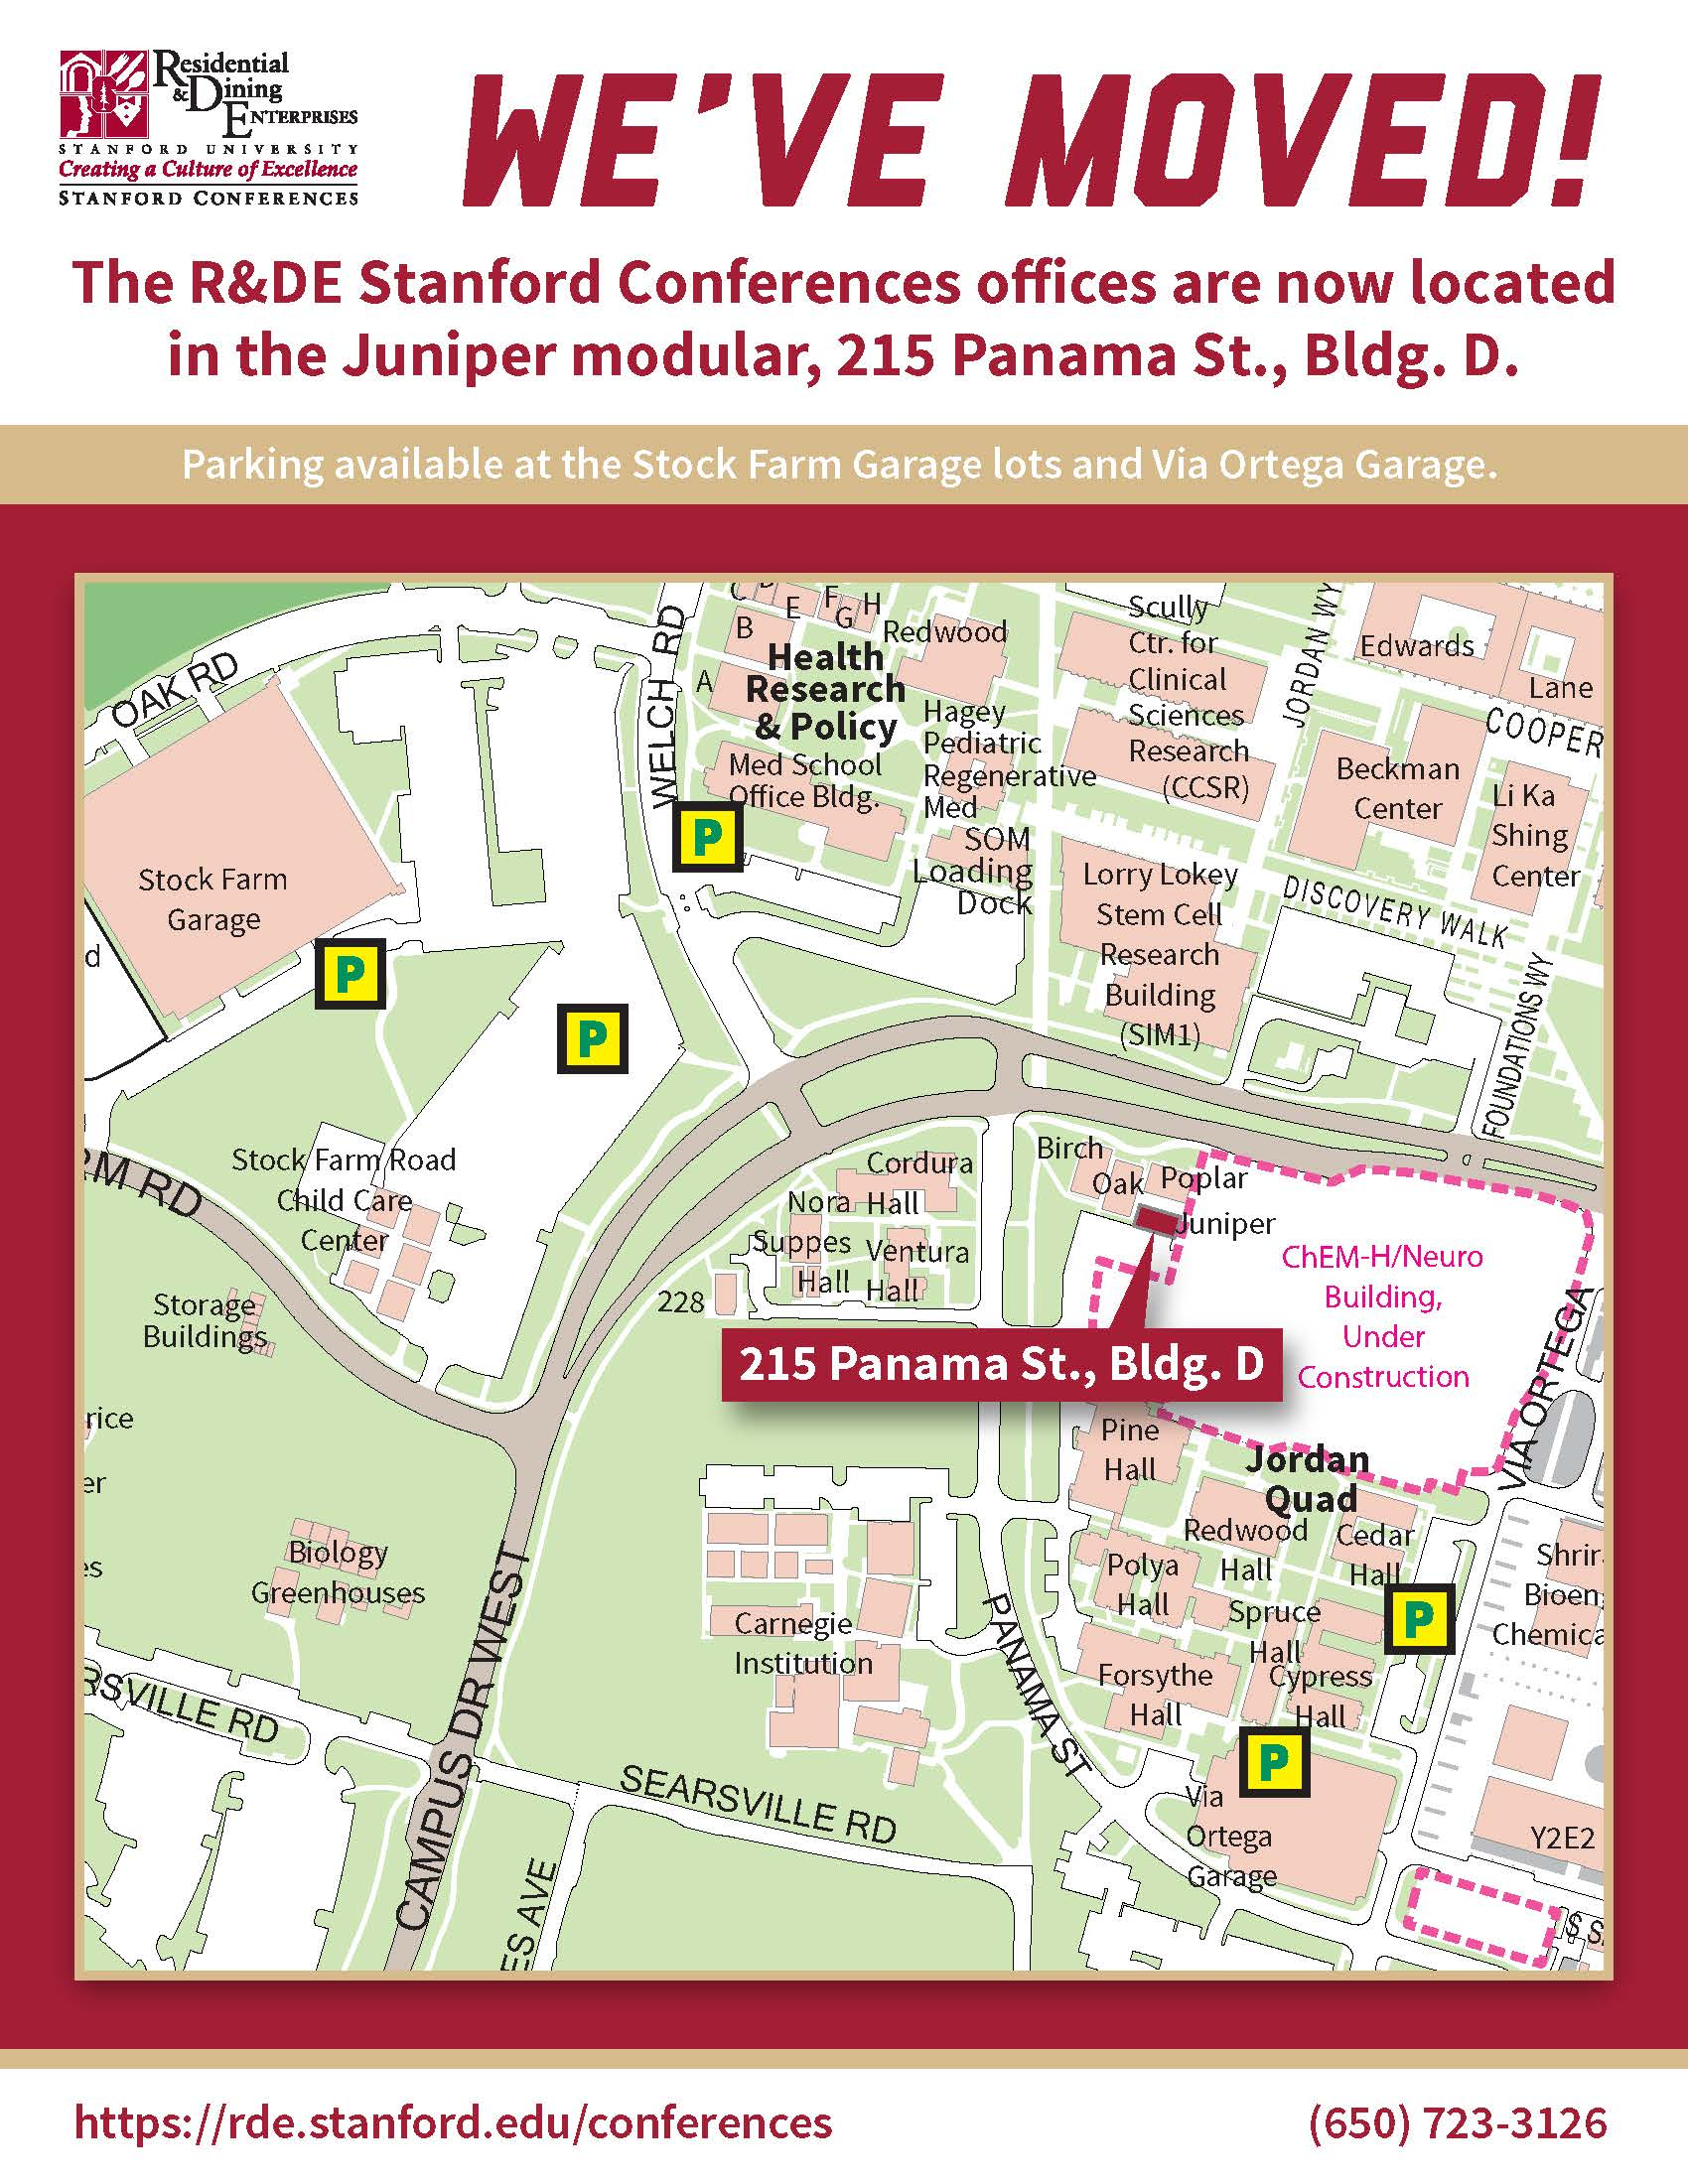 R&DE Stanford Conferences offices have moved to the Juniper Modular, 215 Panama St., Bldg. D. Parking is available at the Stock Farm Garage lots and Via Ortega Garage.  https://rde.stanford.edu/conferences